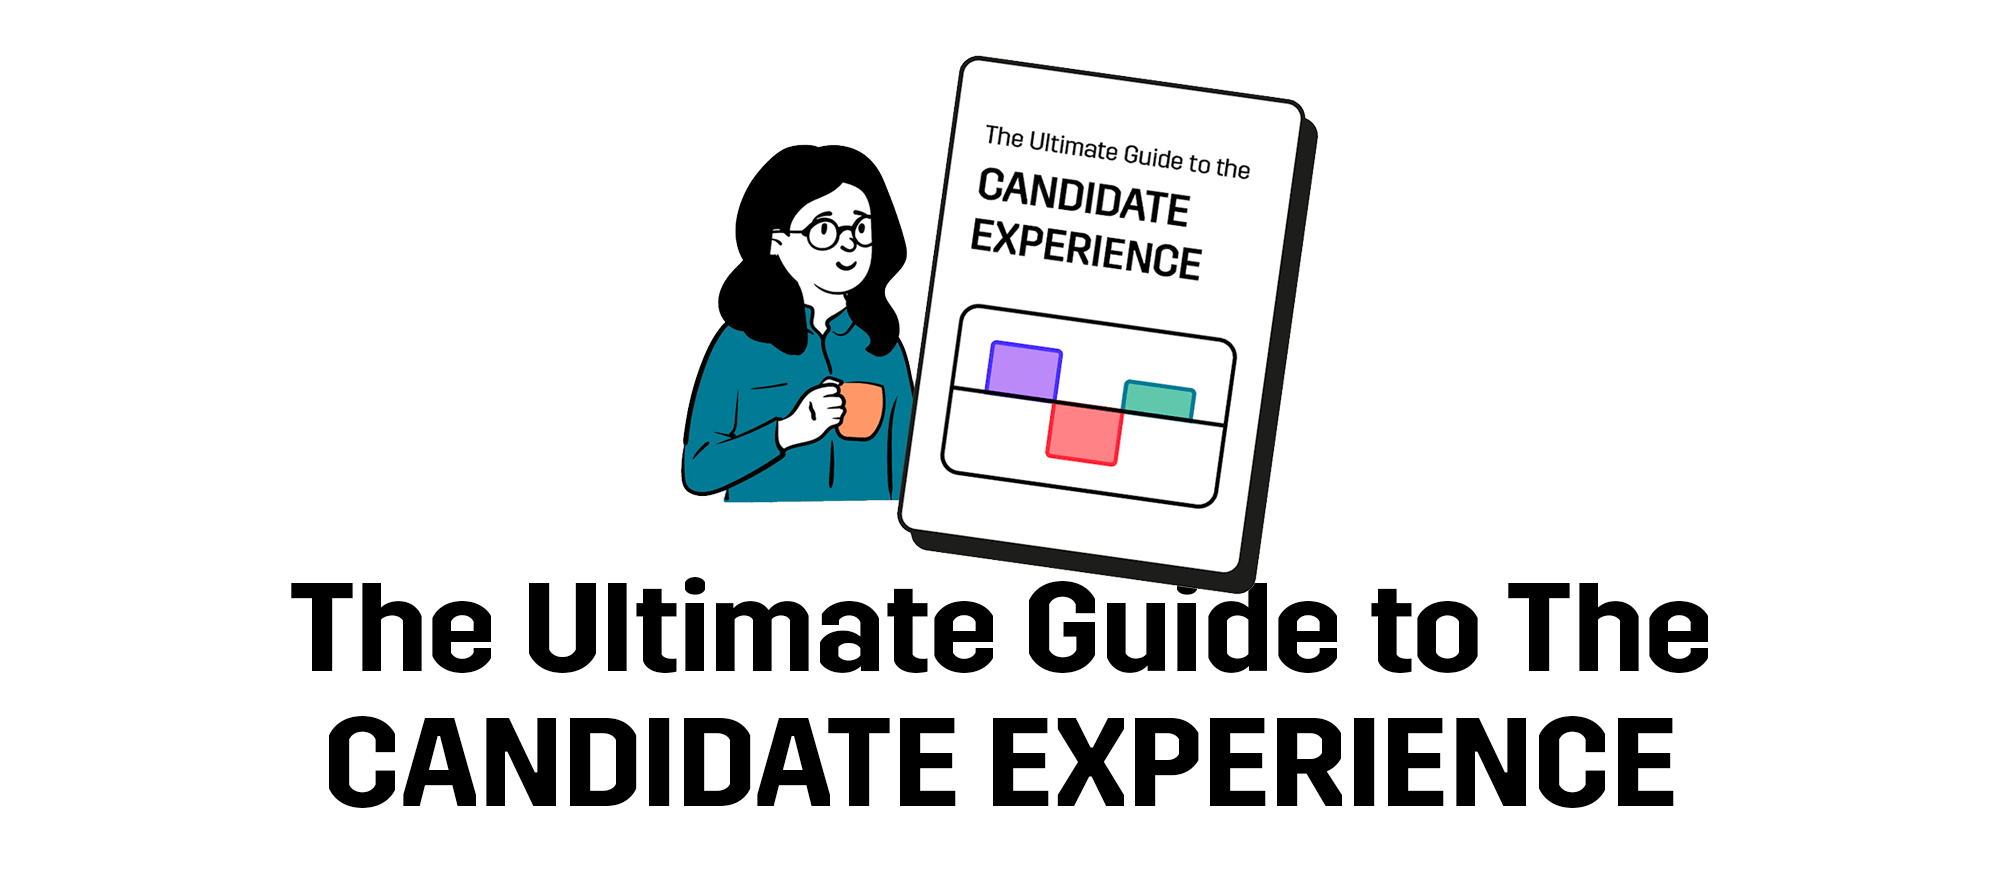 guide-candidate-experience-title-illustration